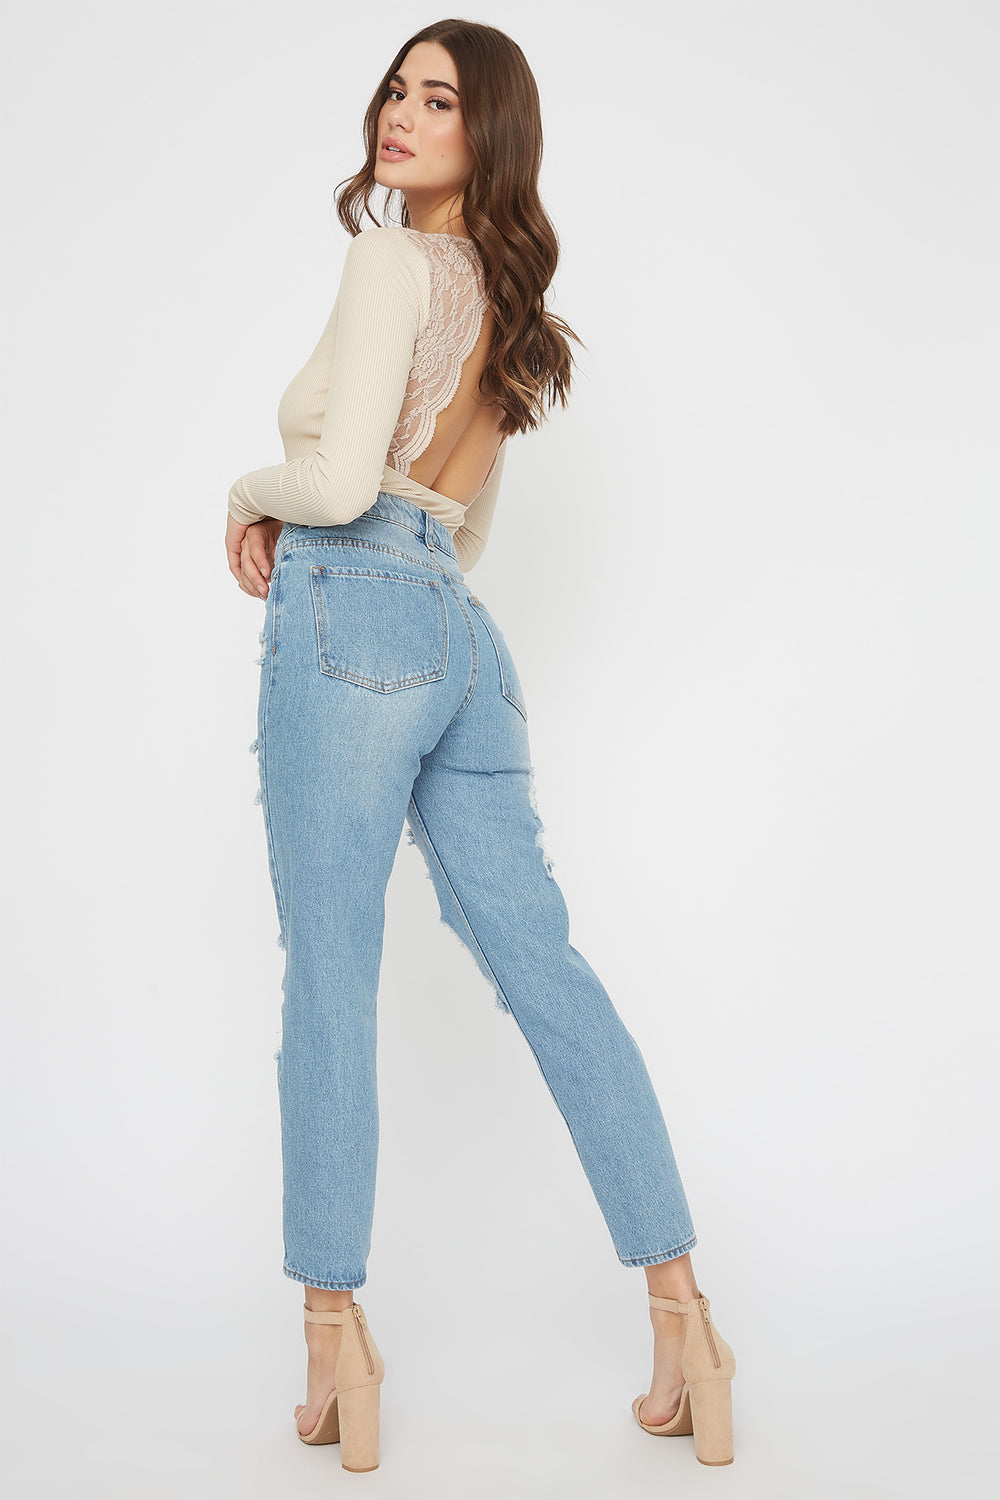 Ultra High-Rise Mid Wash Distressed Mom Jean Medium Blue